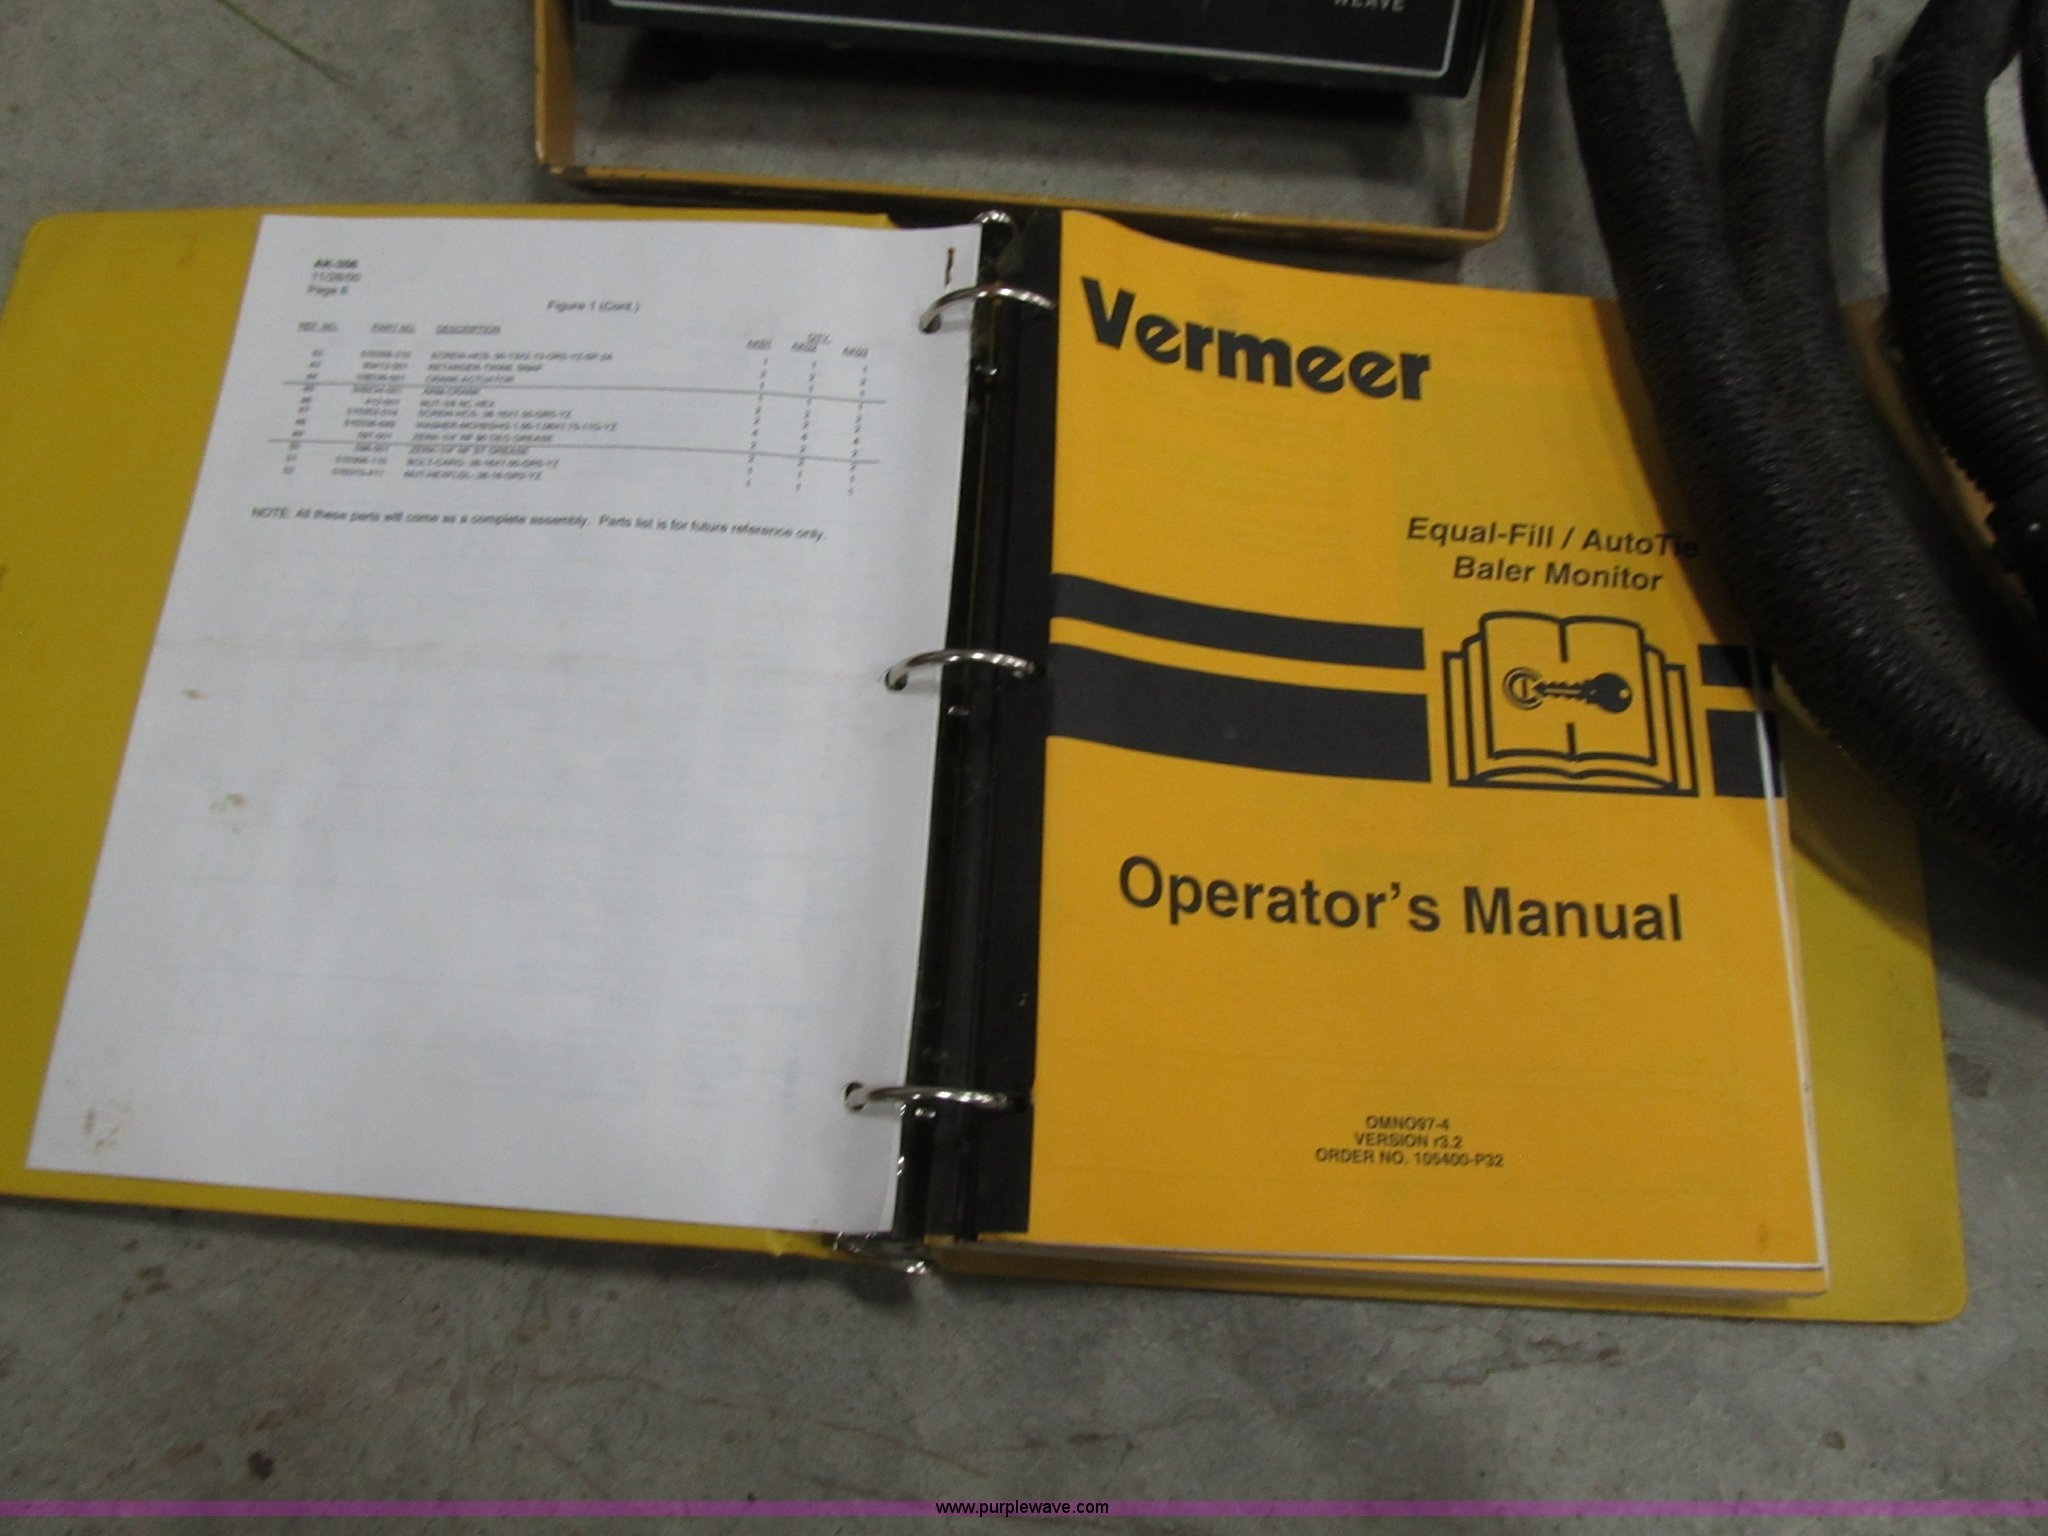 Vermeer Wiring Diagram | Wiring Liry on alpine stereo harness, battery harness, pony harness, suspension harness, engine harness, dog harness, nakamichi harness, cable harness, oxygen sensor extension harness, radio harness, electrical harness, obd0 to obd1 conversion harness, pet harness, safety harness, amp bypass harness, fall protection harness, maxi-seal harness,